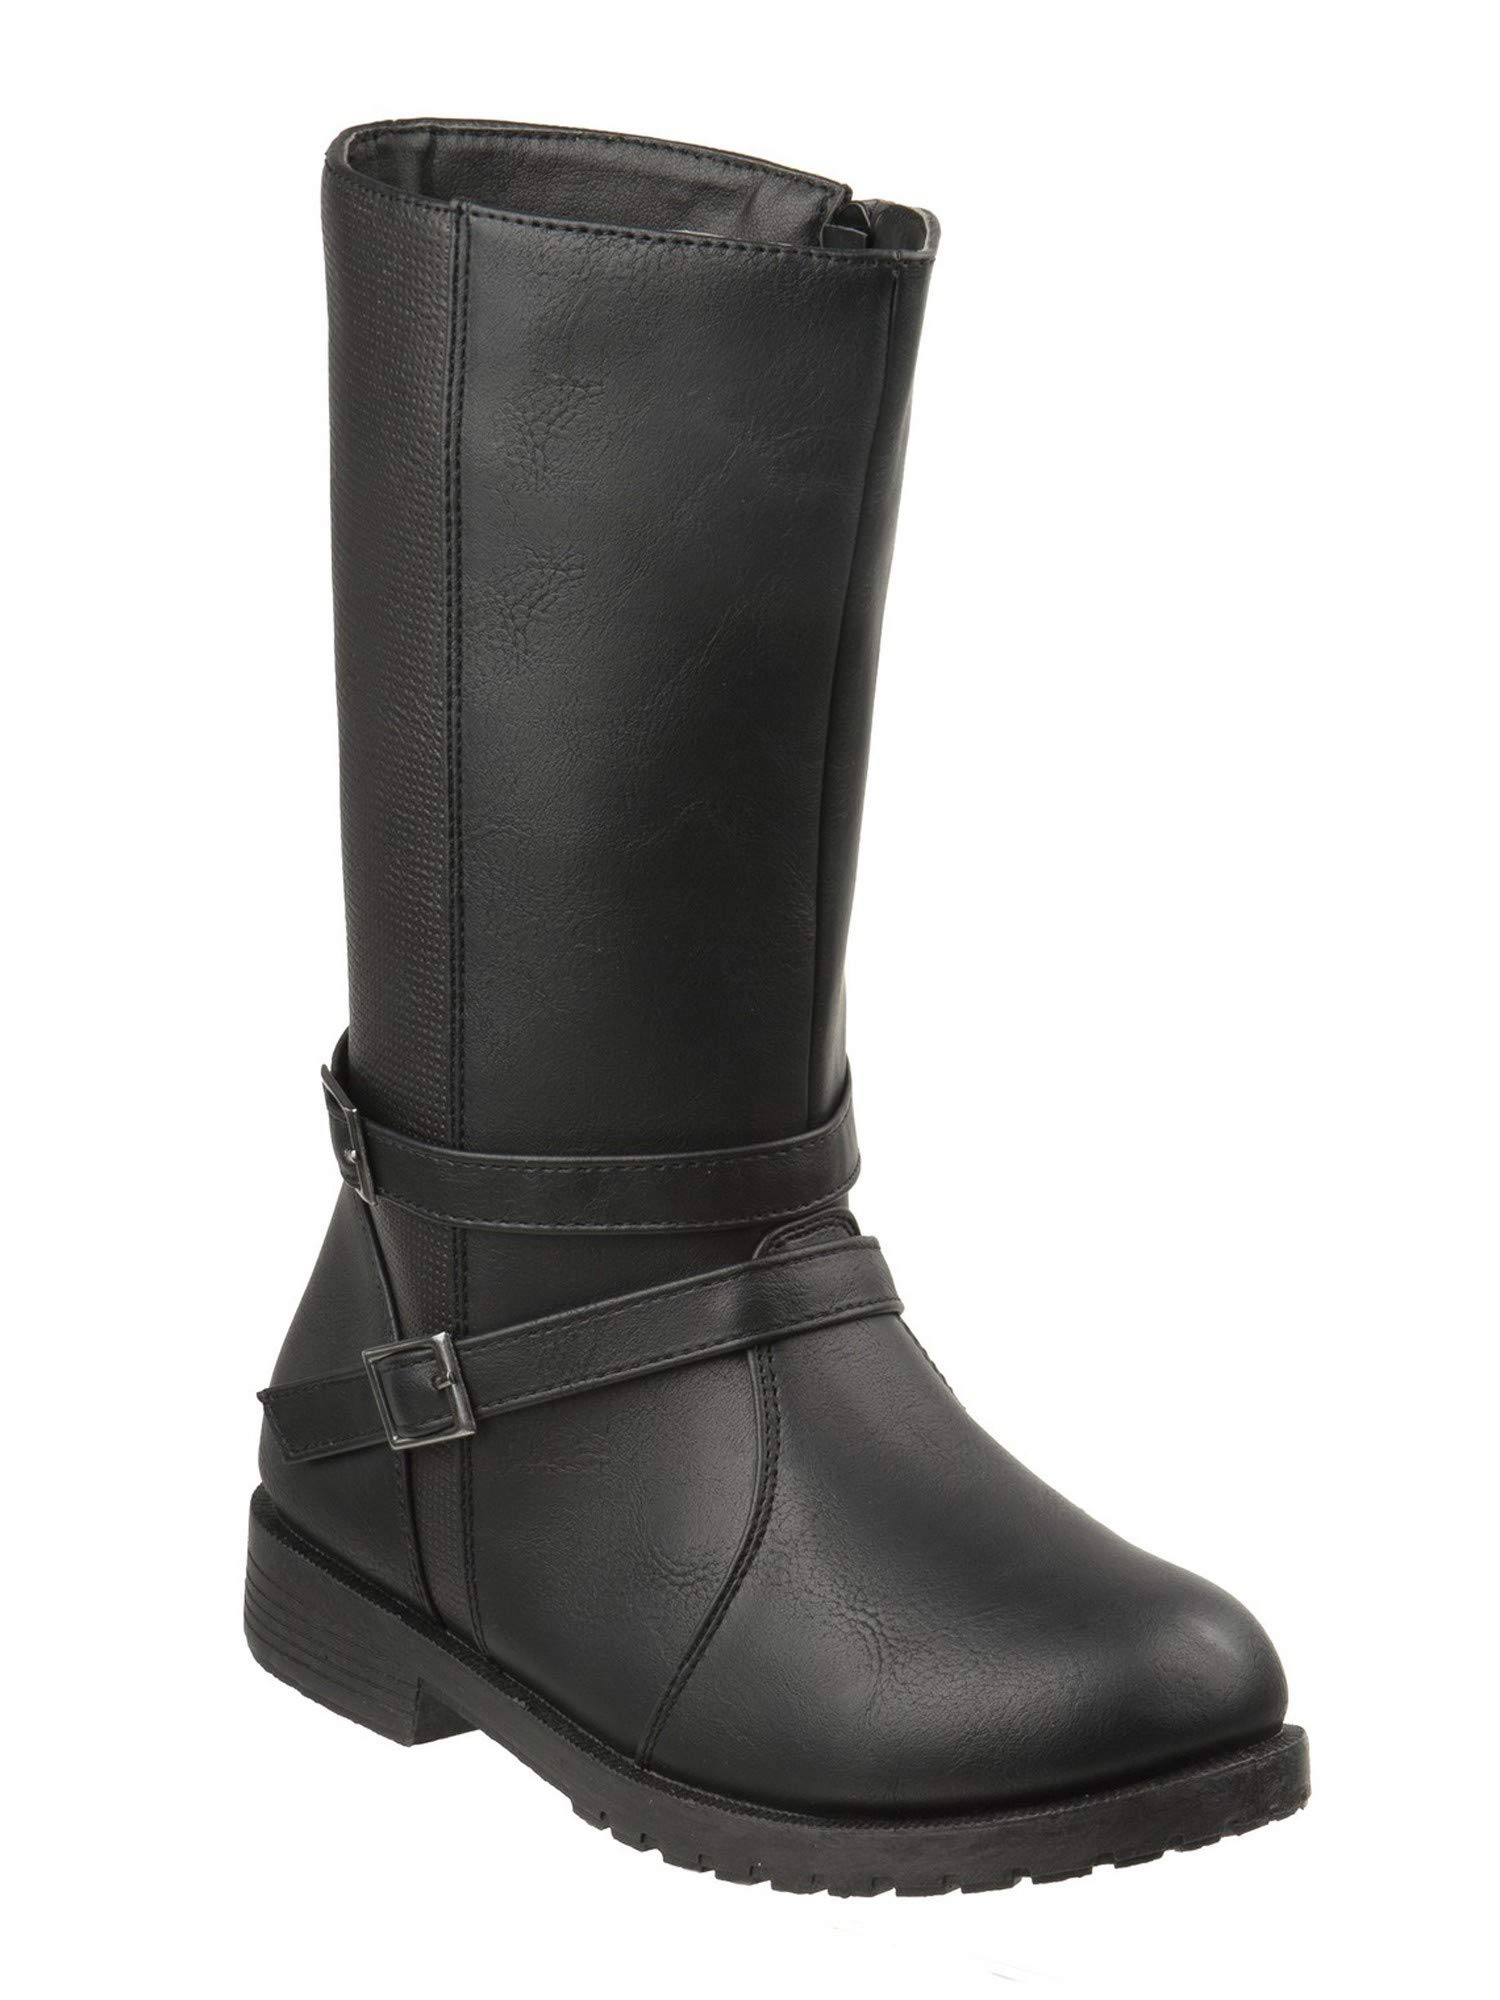 Josmo Girls Black Buckled Ankle Strap Side Zipper Mid Calf Boots 11 Kids